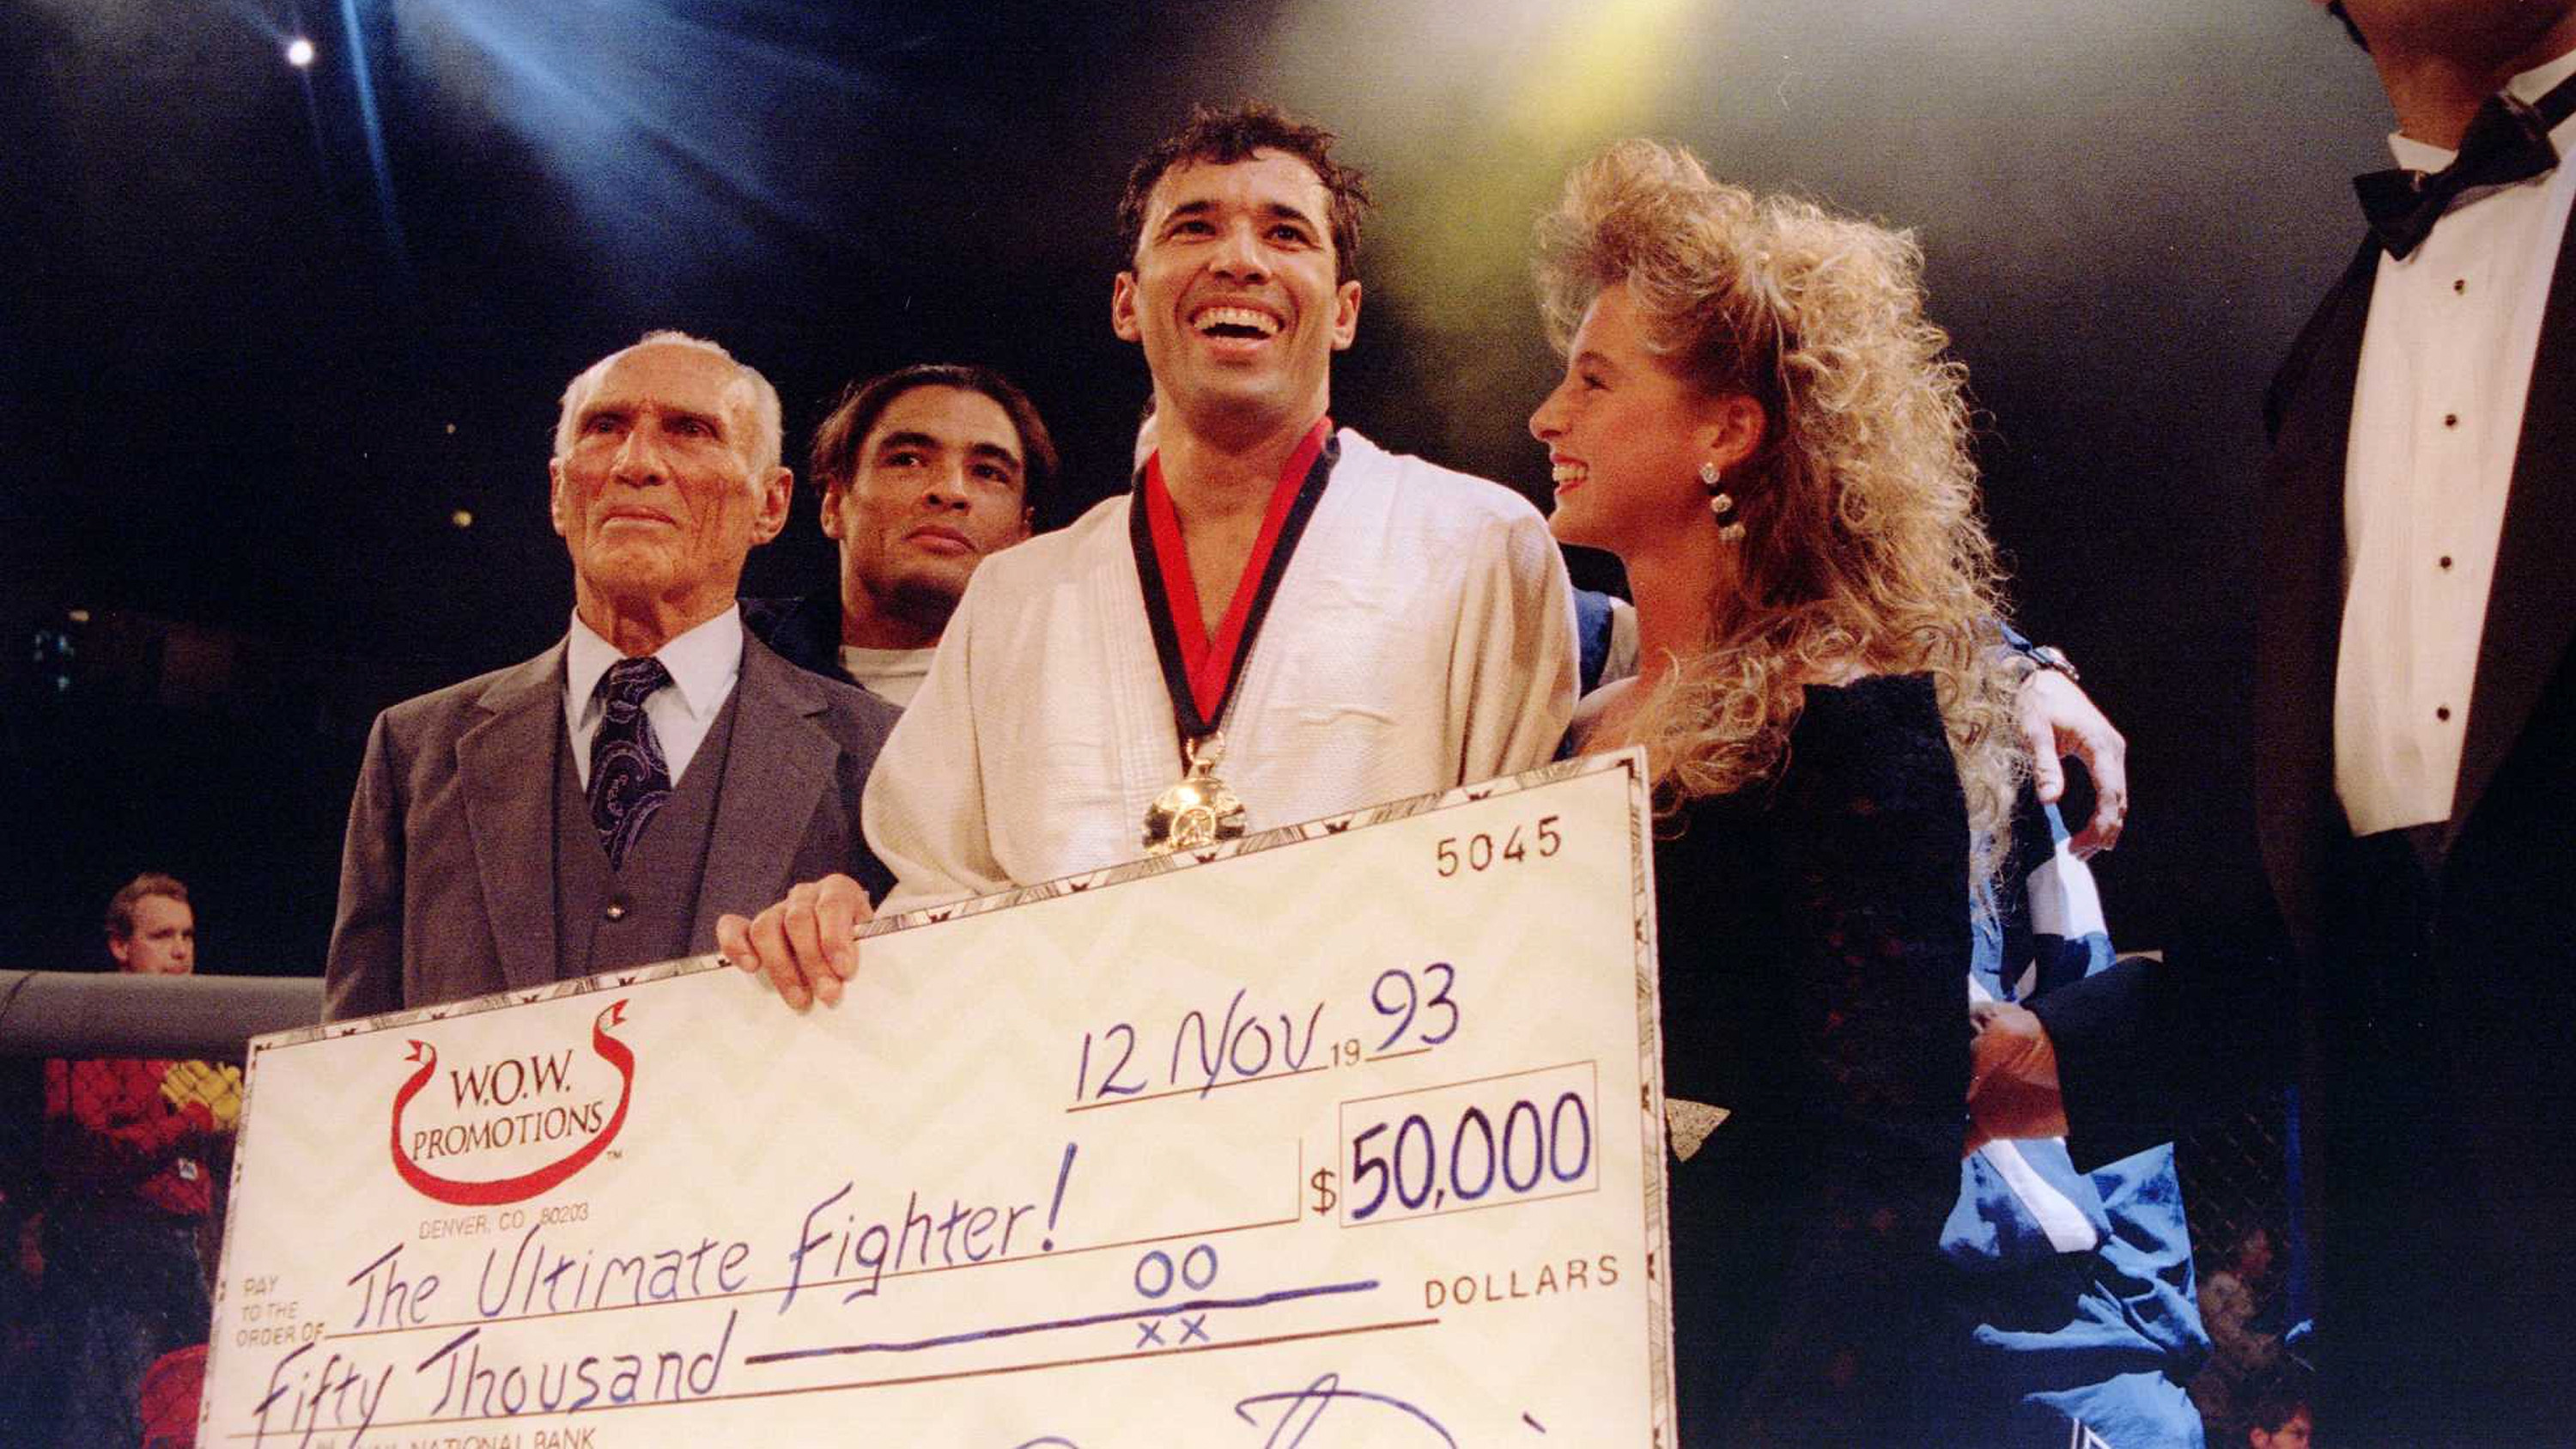 Jiu-Jitsu black belt Royce Gracie (USA) receives a $50,000 check after becoming